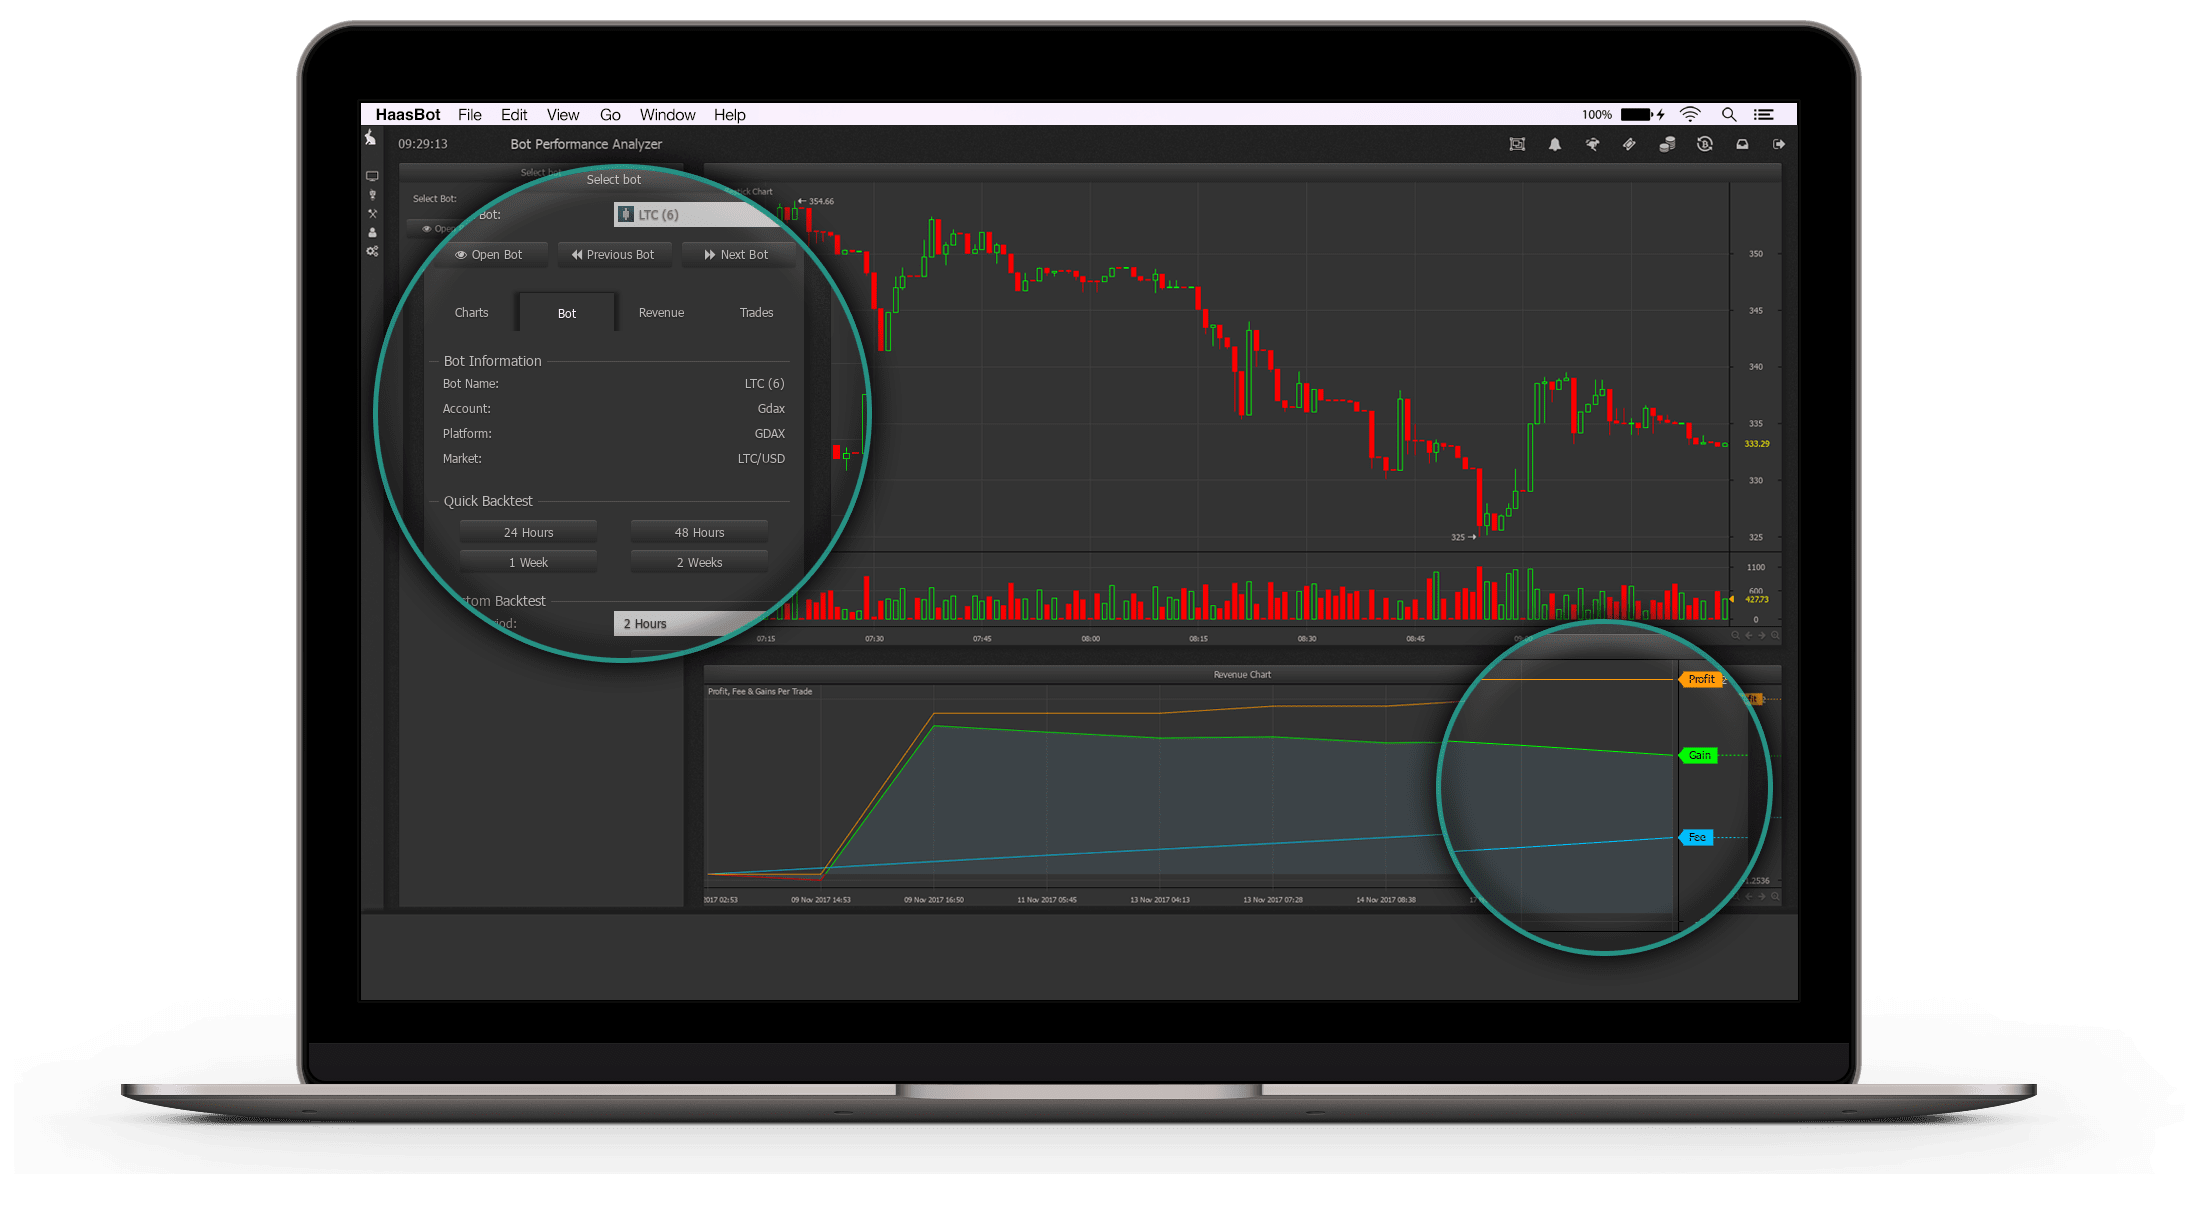 Haas Online Trading Bot Dashboard